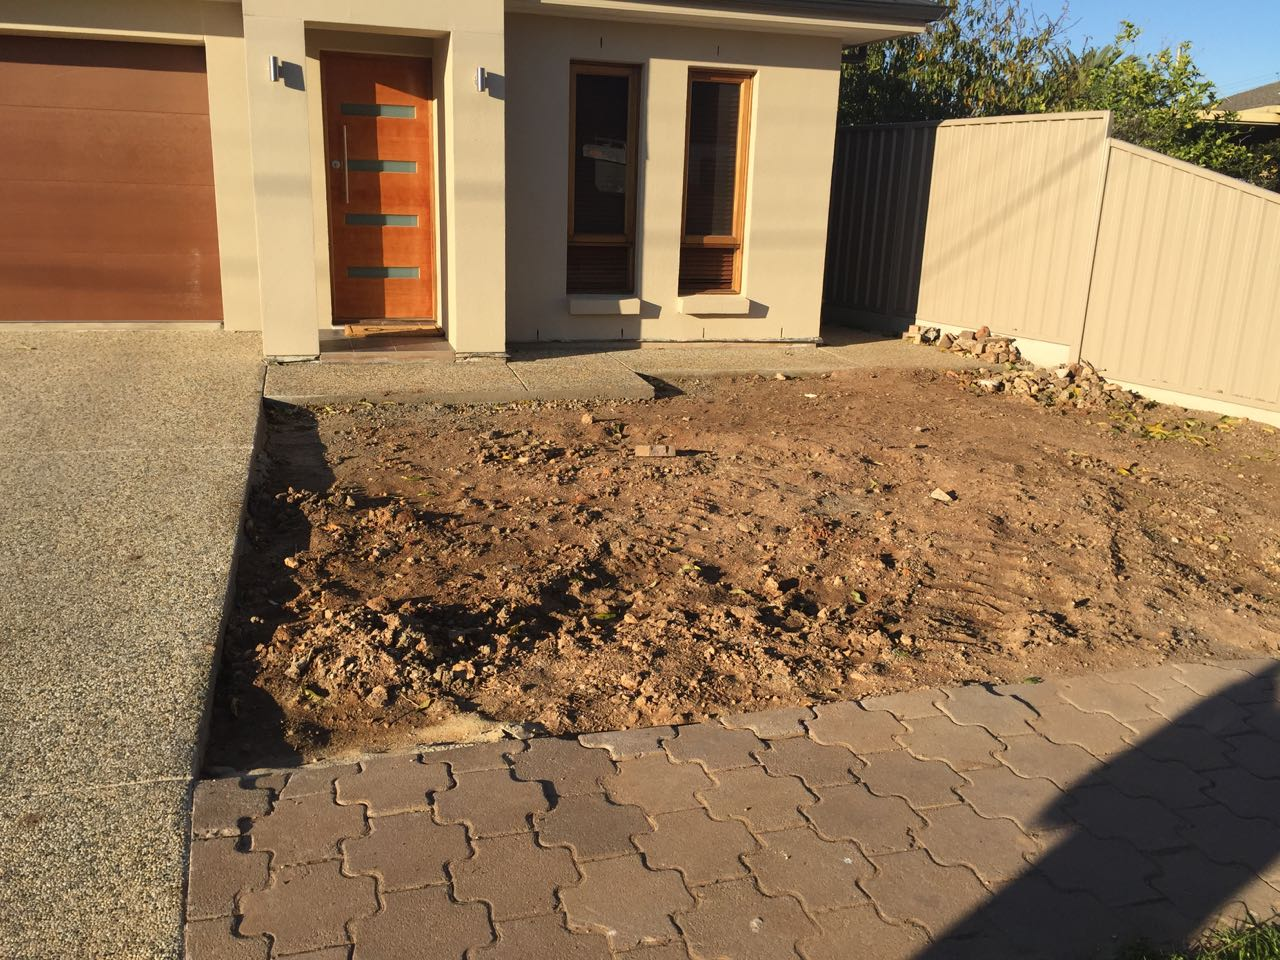 Northgate - Preparing Front Yard For Concrete Tiled Pathway